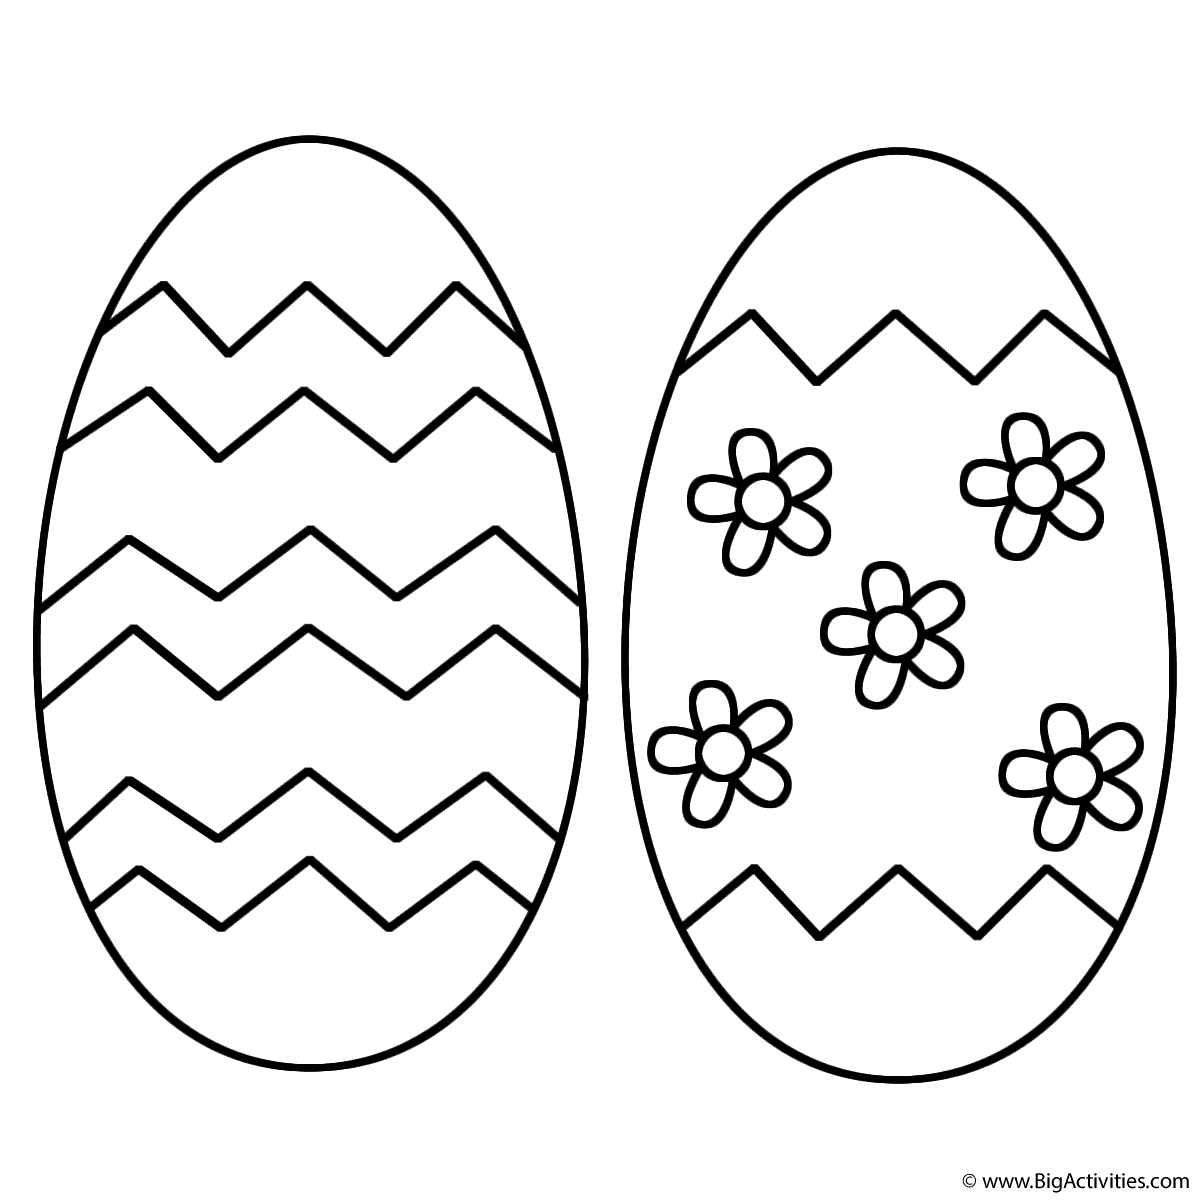 Two Easter Eggs With Patterns And Flowers